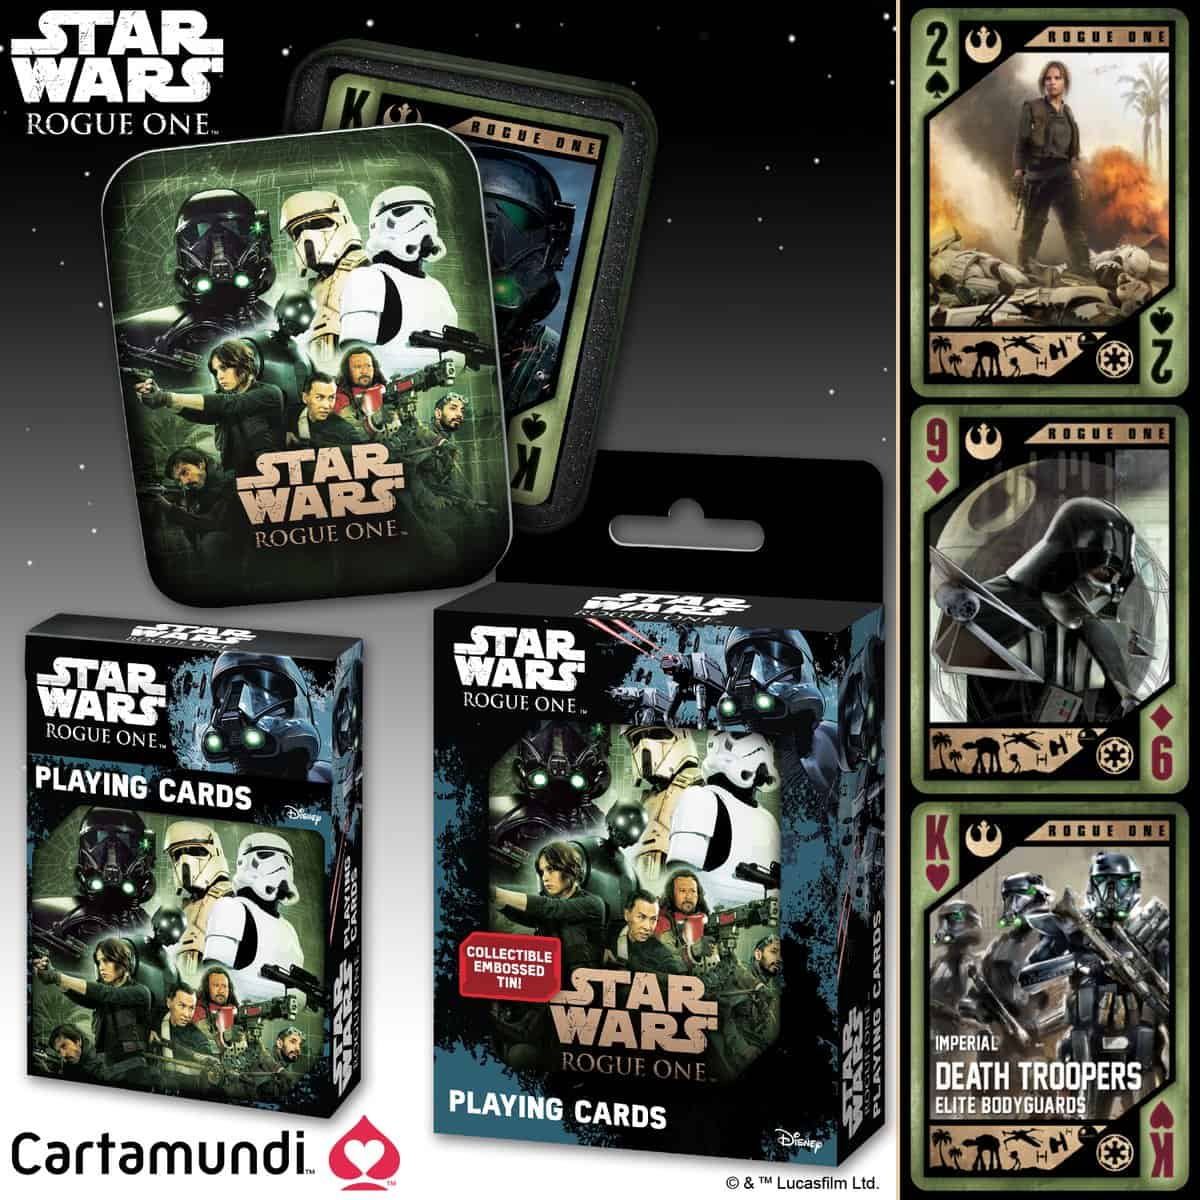 Star Wars Rogue One Cards